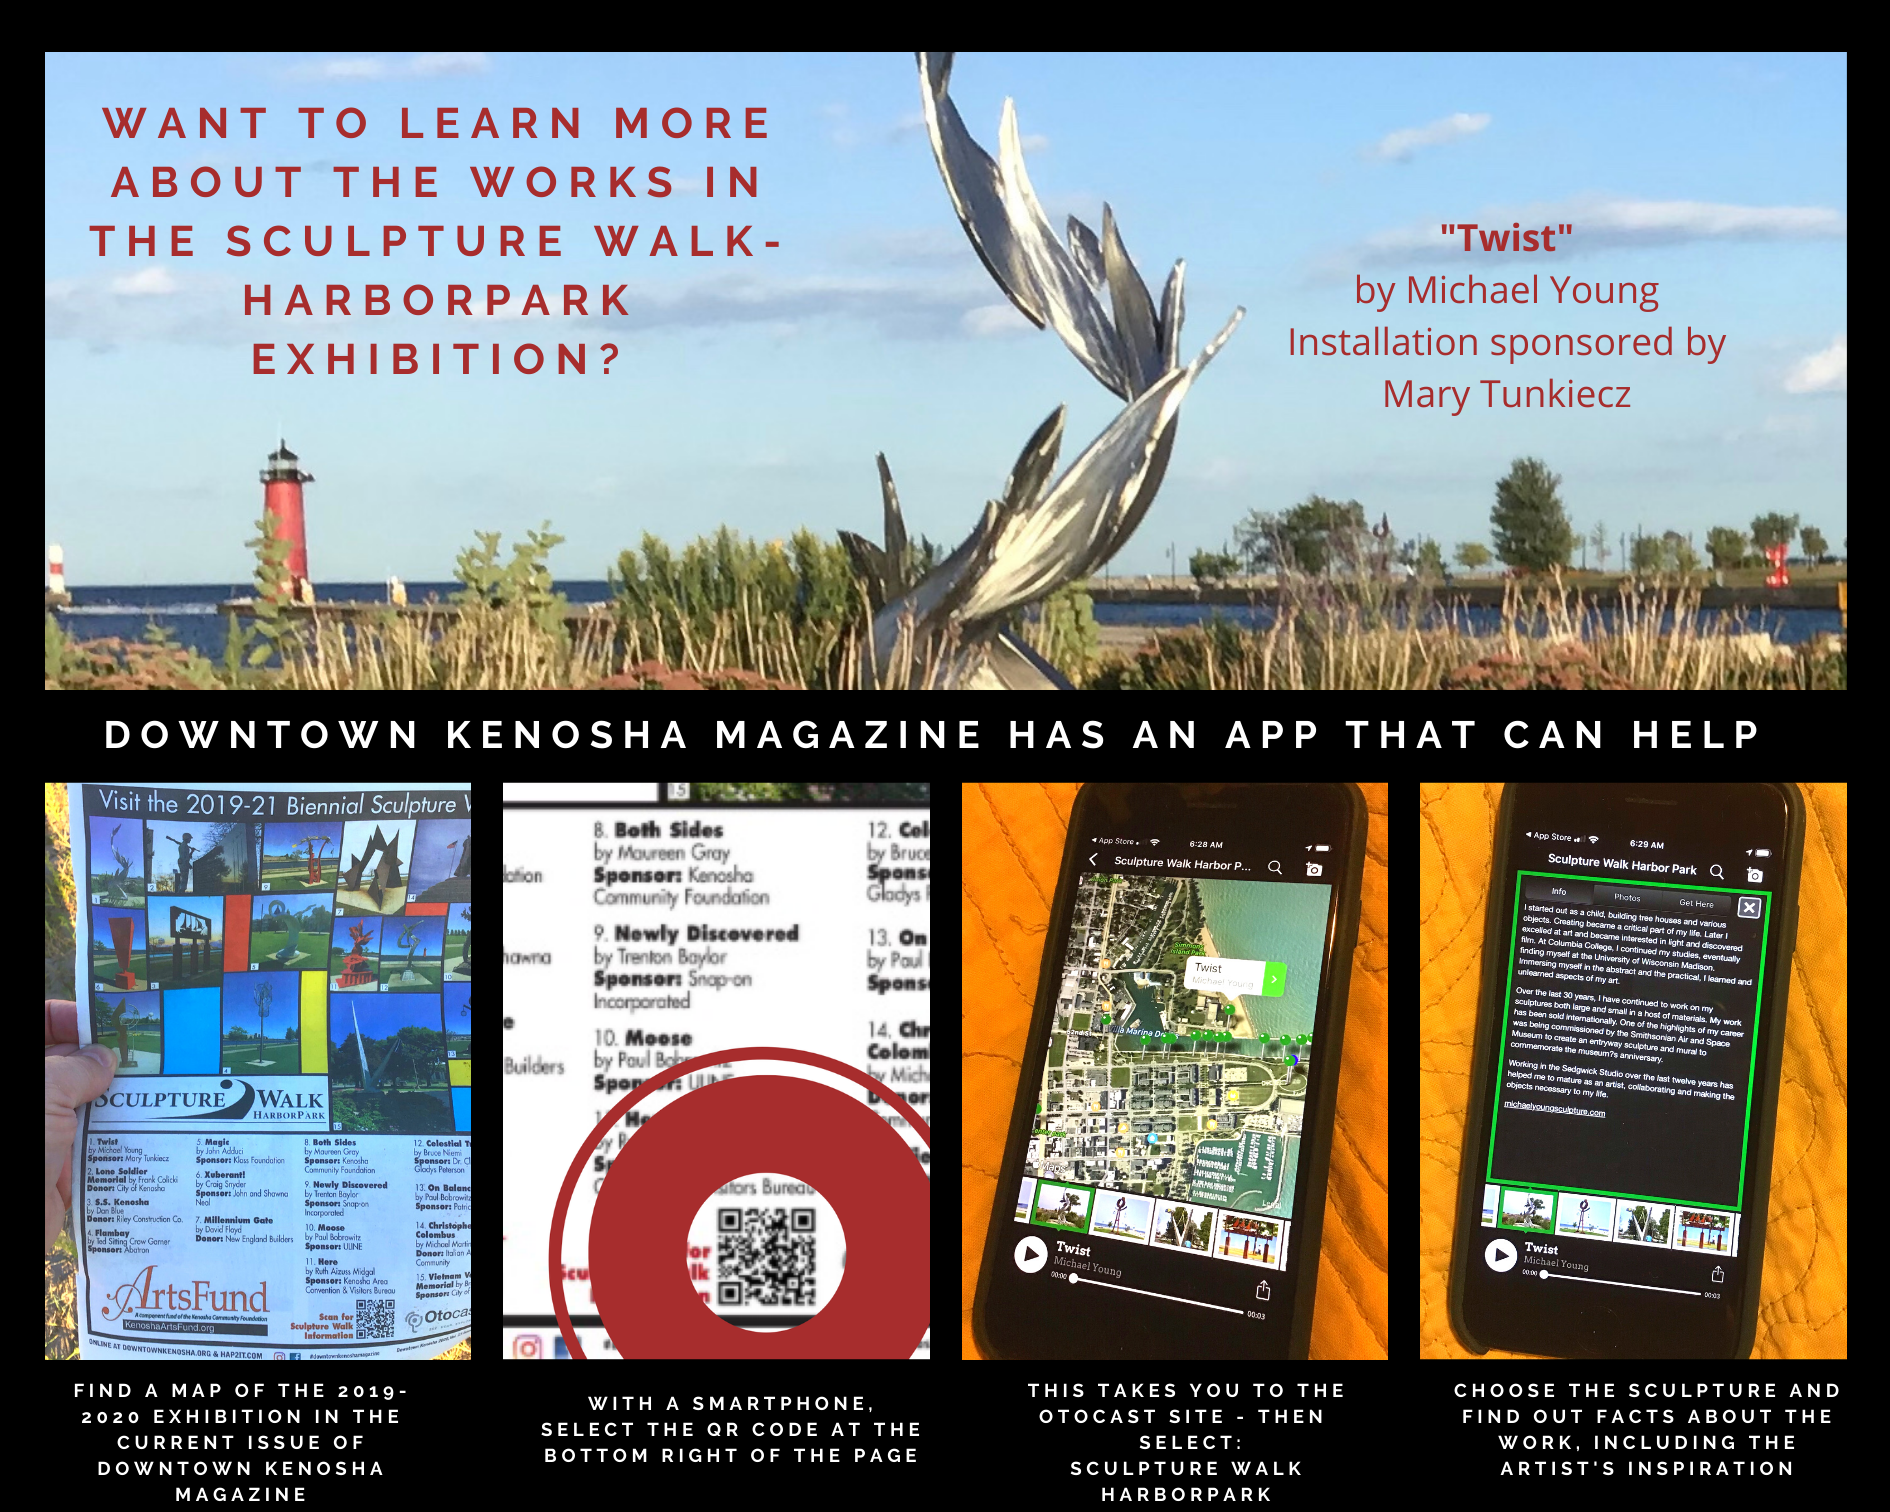 About Sculpture Walk Map and Otocast-App in Downtown Kenosha Magazine